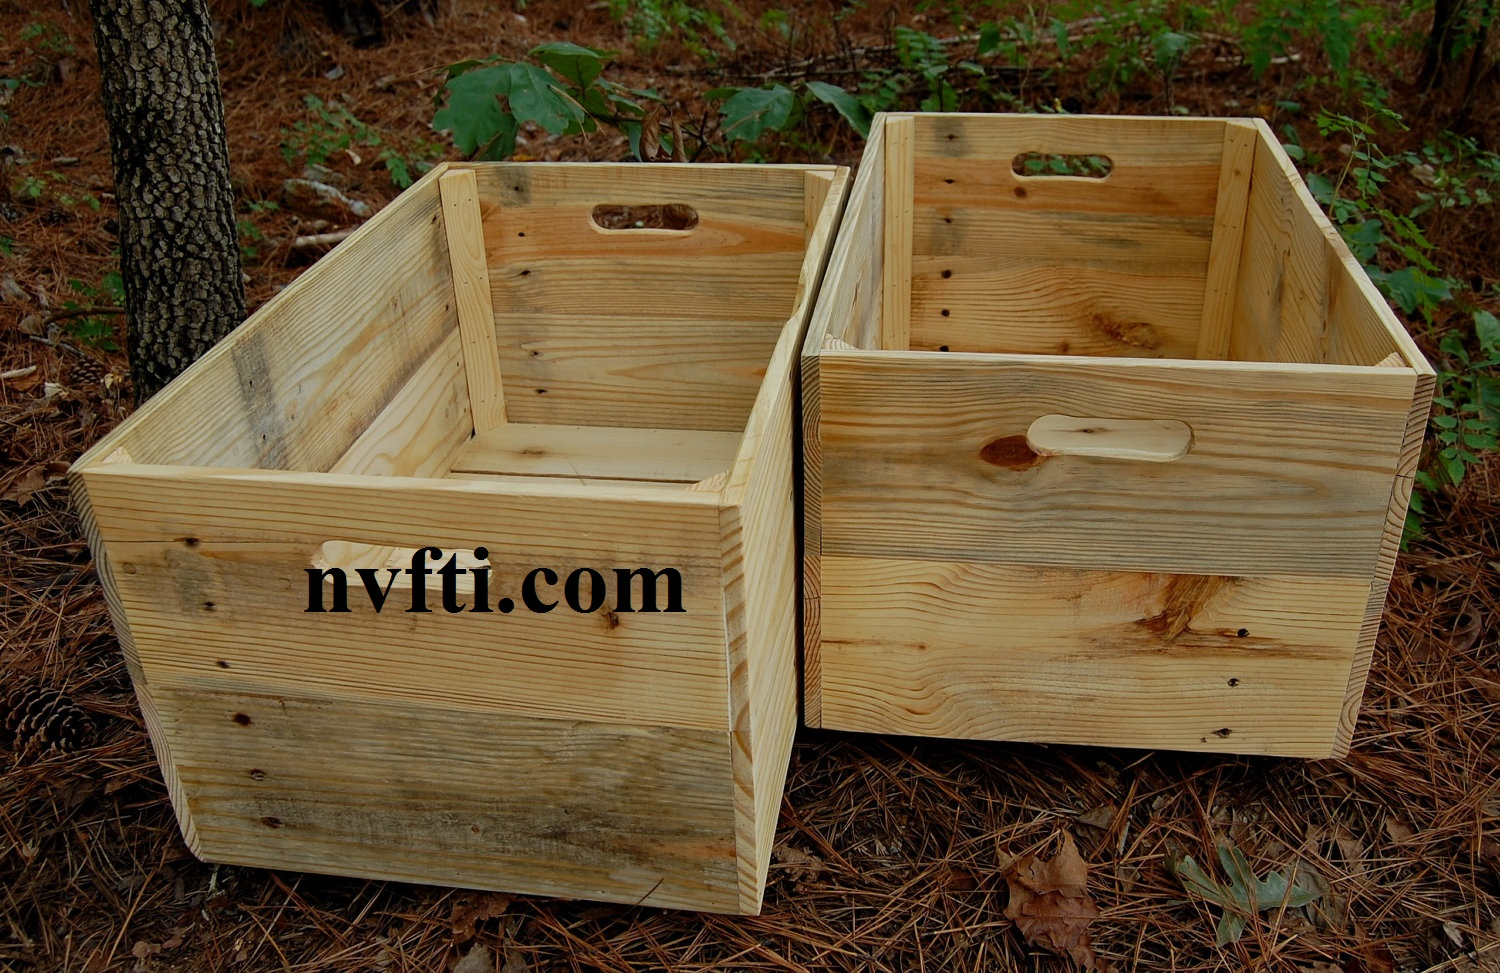 Timber Crates For Sale Wooden Crates Nvfti Offers Home Furniture Wooden Pallet